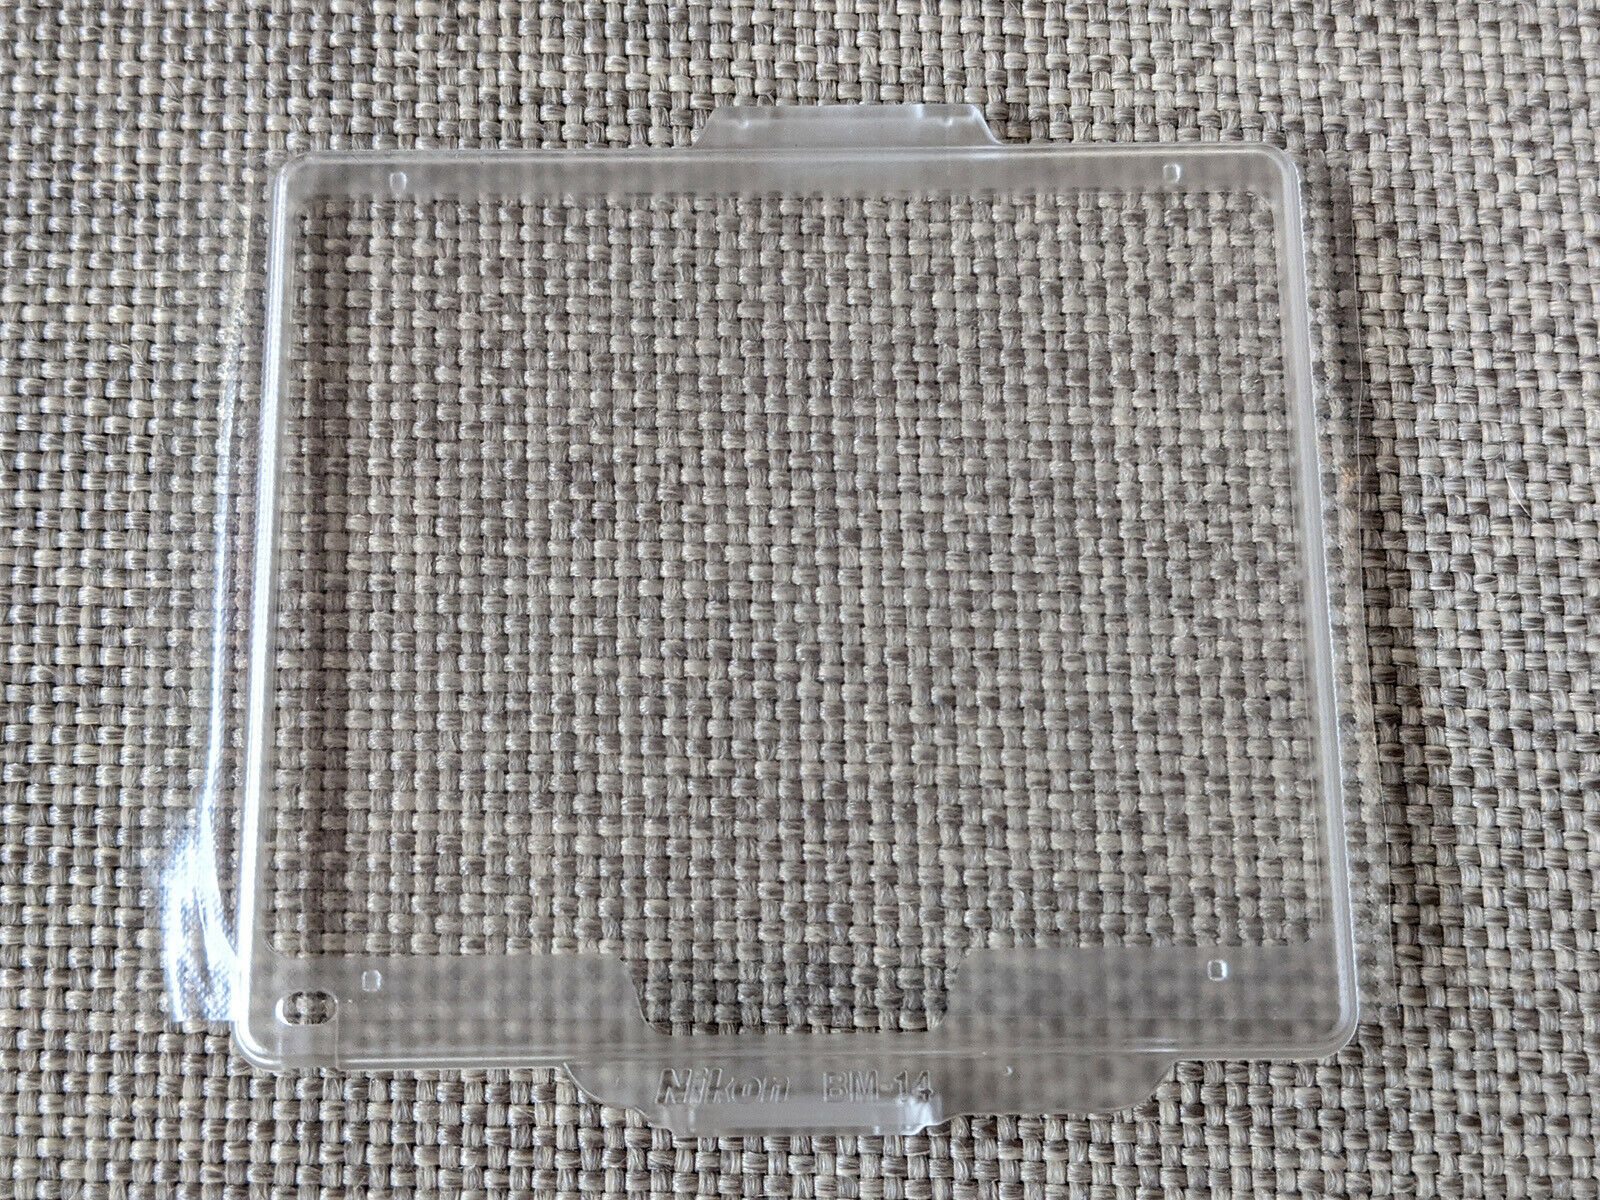 Genuine Nikon BM-14 LCD Monitor Cover for D600 and D610